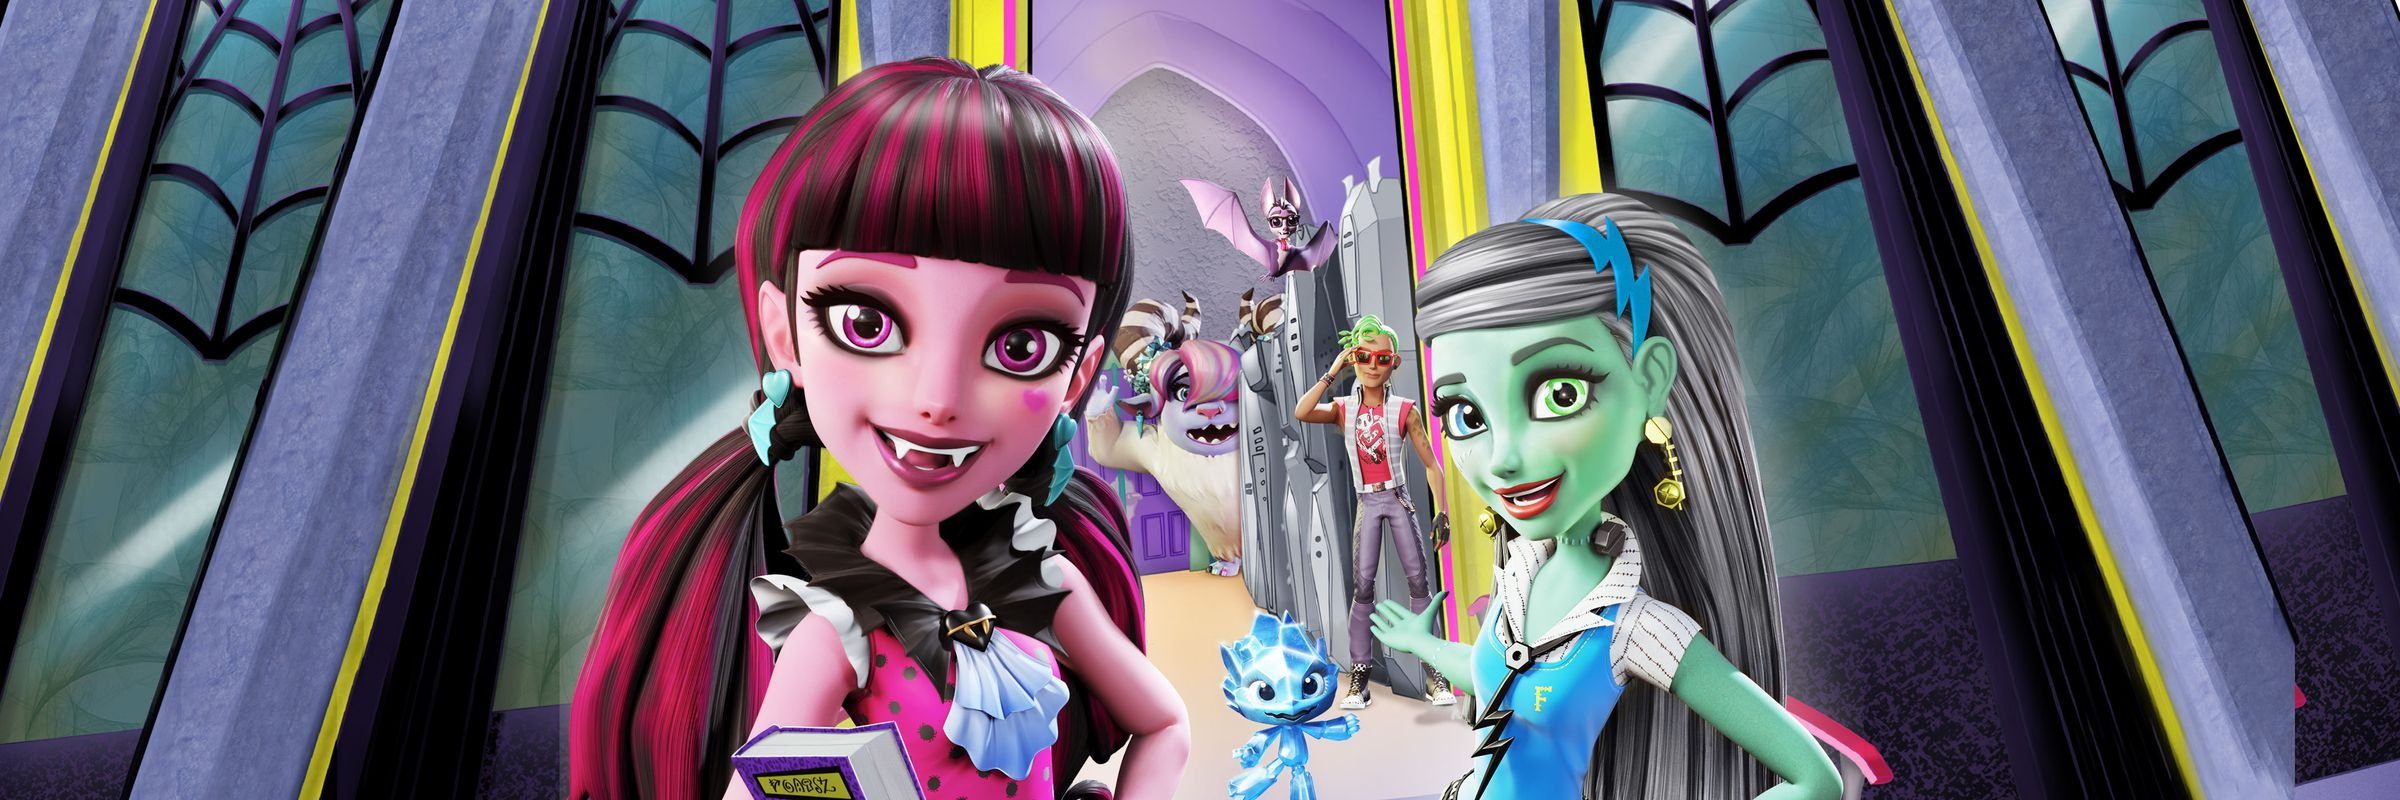 Monster high games unblocked